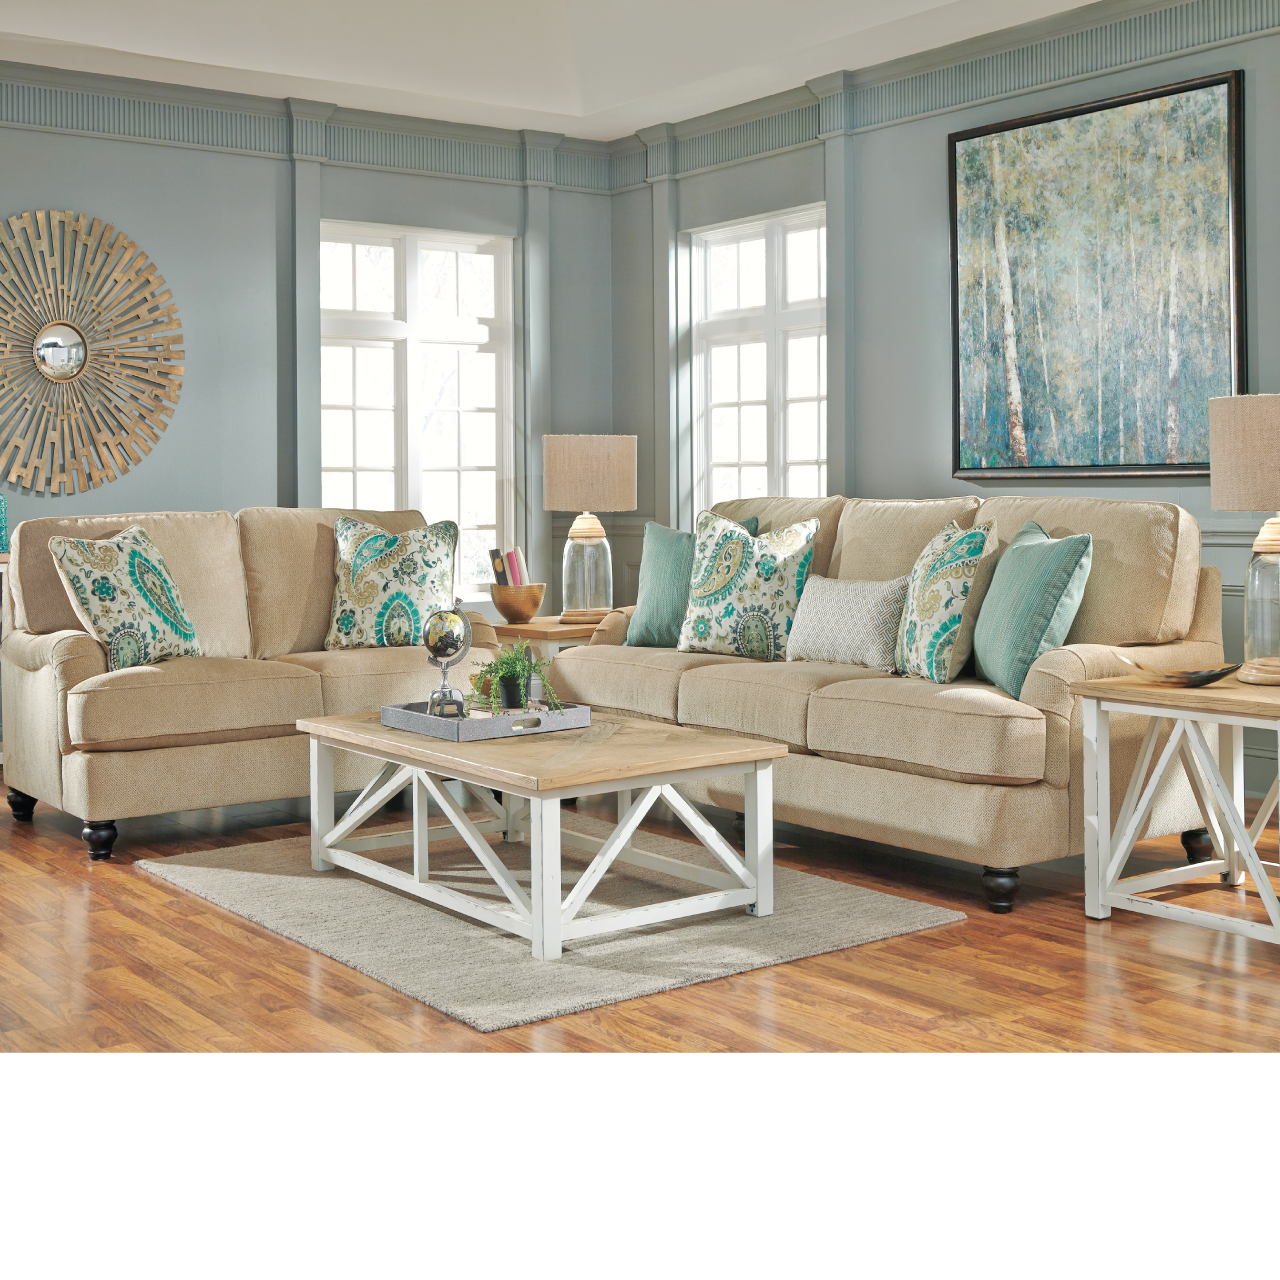 Ashley Furniture Distribution Center Concept Enchanting Decorating Design